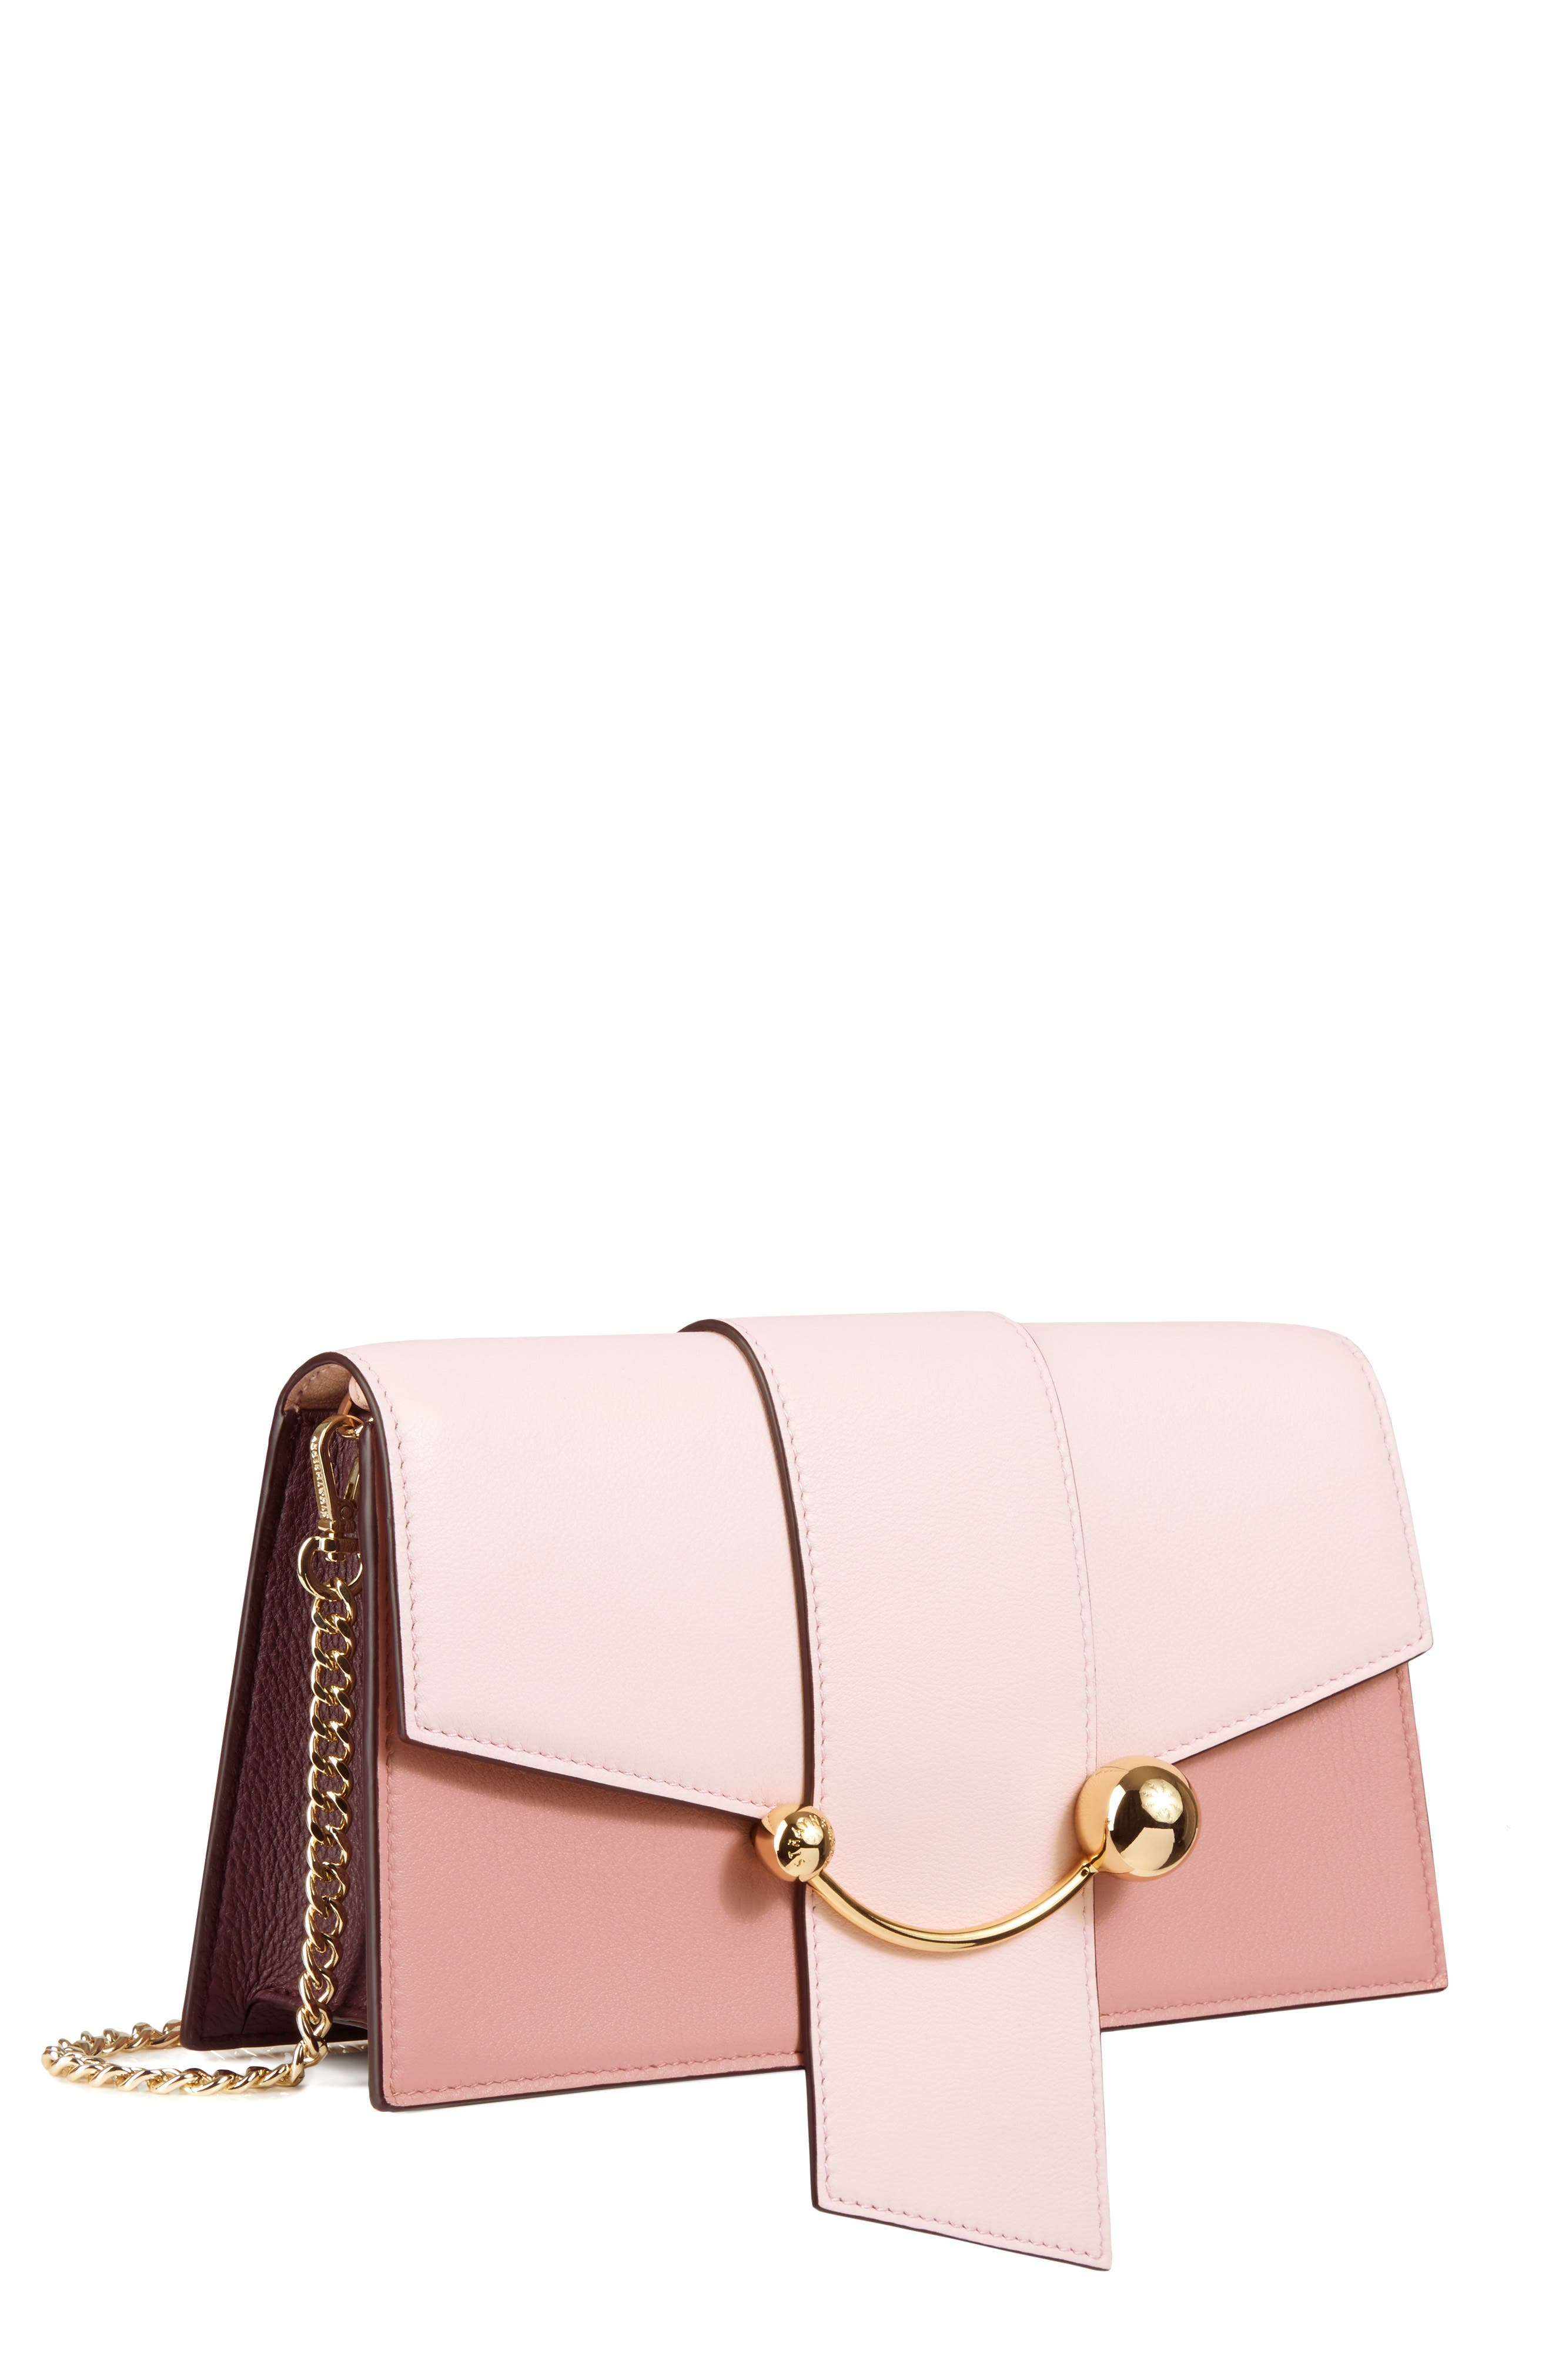 STRATHBERRY,                             Mini Crescent Leather Clutch,                             Main thumbnail 1, color,                             BABY PINK/ ROSE/ BURGUNDY